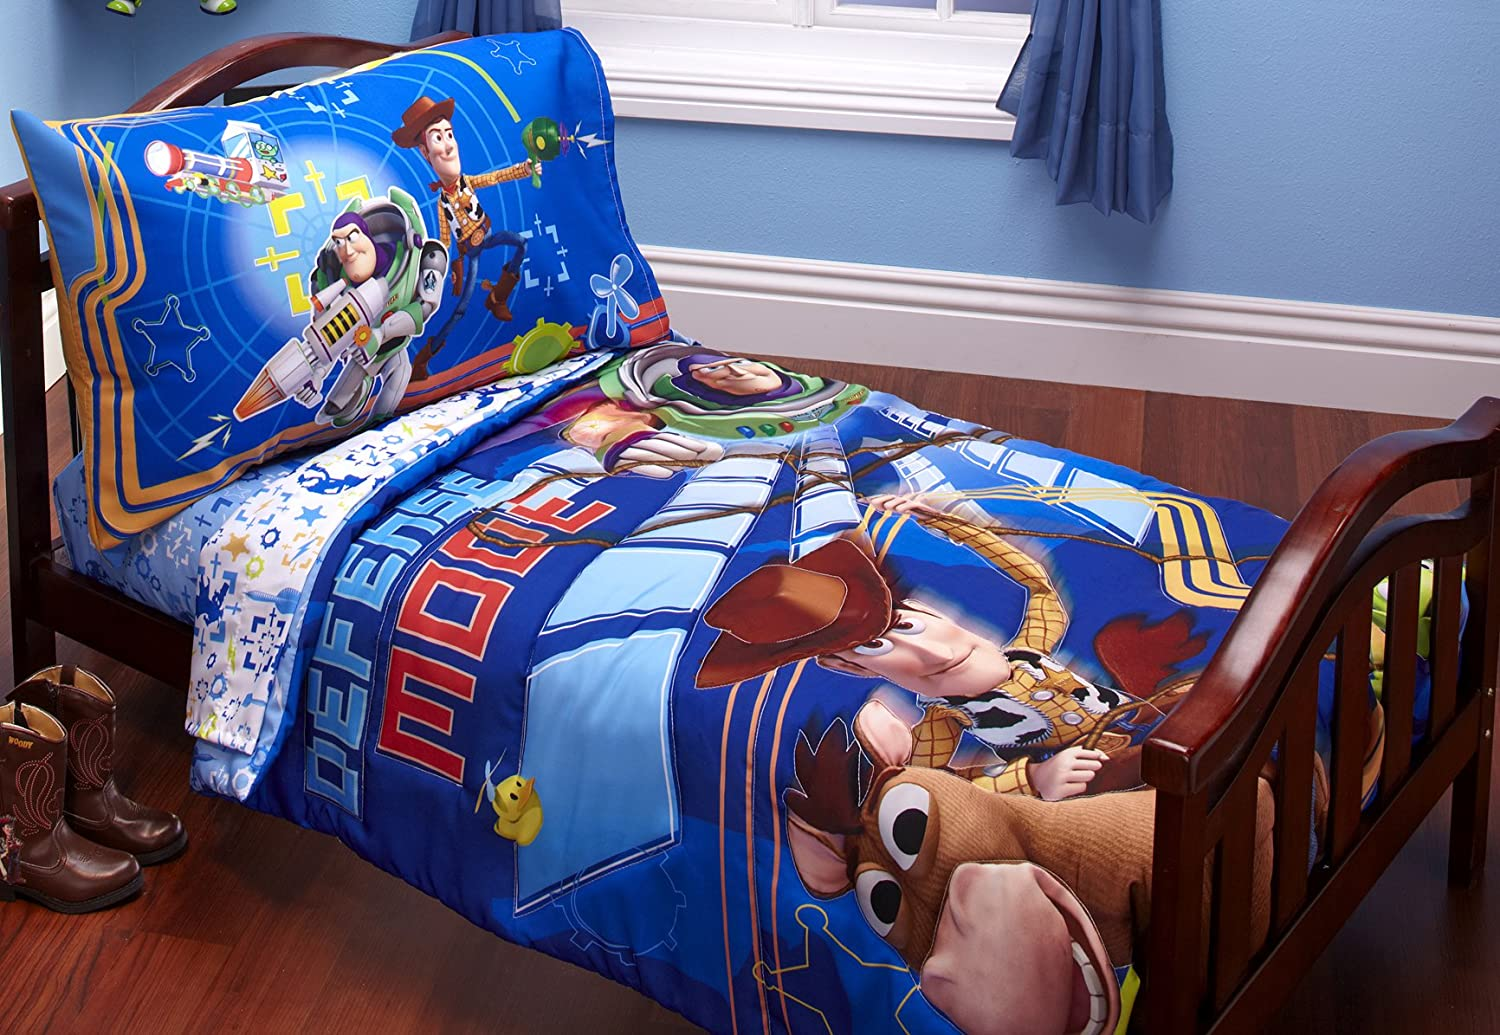 Toy story toddler bedding - Toy Story Toddler Bedding 1